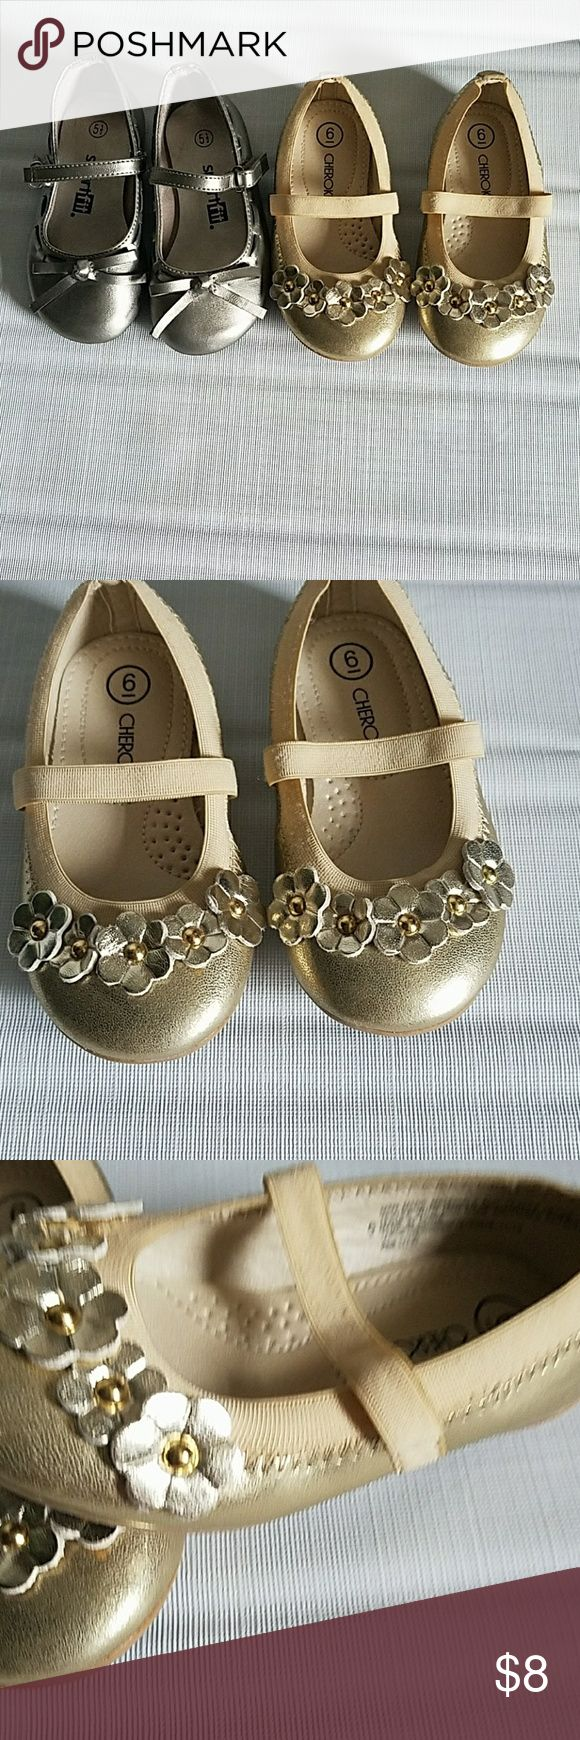 Girls gold and silver shoe bundle Bundle of two pair of girls shoes great used condition gold are size 6 and silver are 5 1/2 (Little girls) cherokee,Smart fit Shoes Dress Shoes